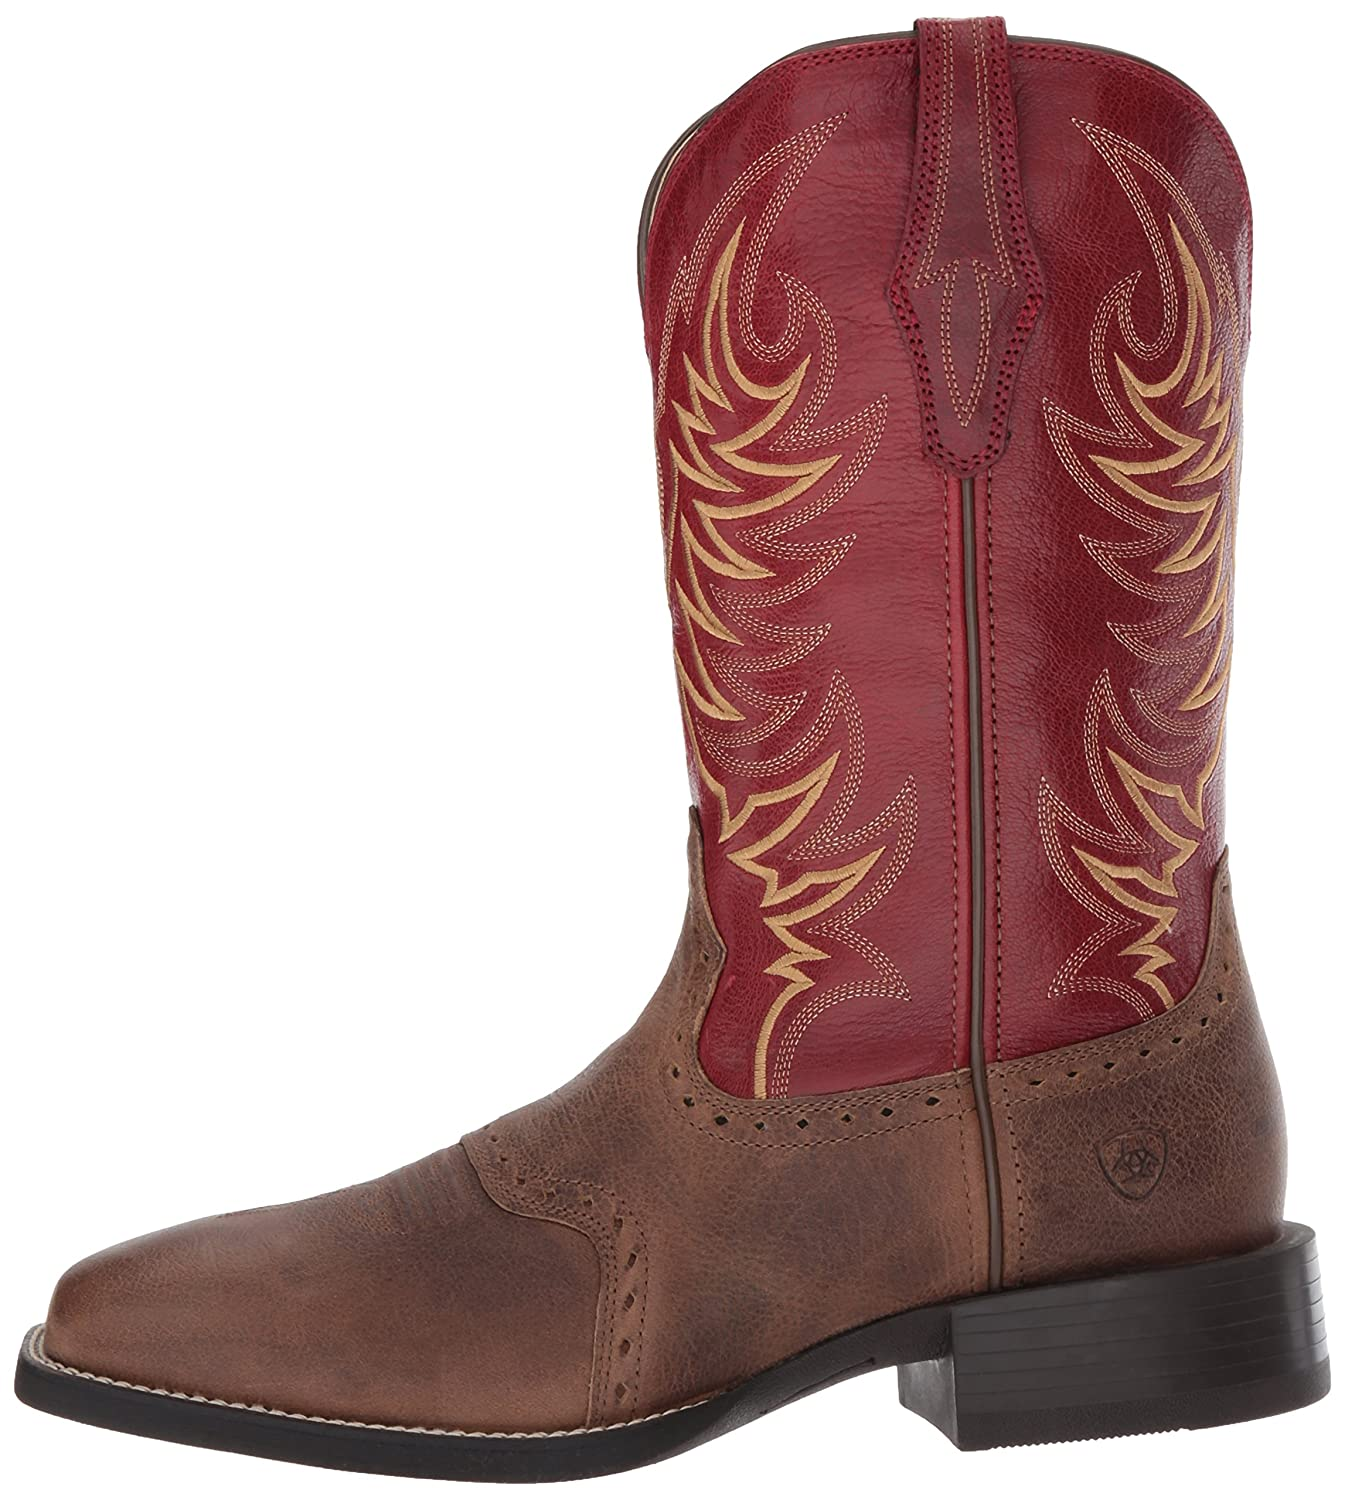 Ariat Men's Sport Sidewinder Work Boot B01N26MXDT 8.5 D(M) US|Baked Brown